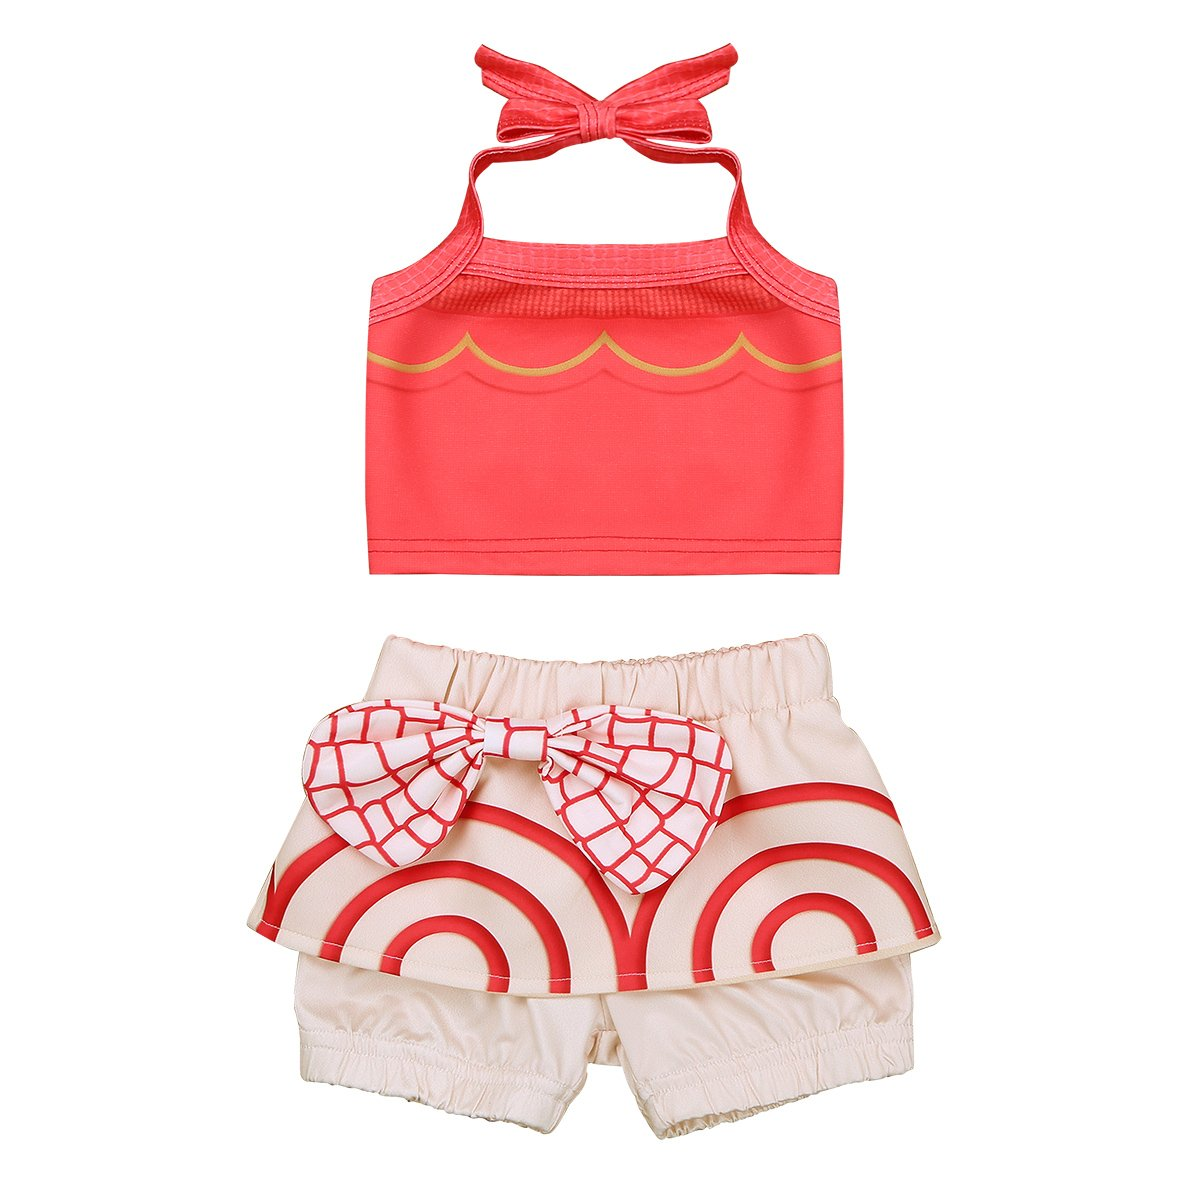 CHICTRY Toddler Girls Baby Fancy Dress Costume Halter Beachwear Swim Wear Bikini Bathing Suits